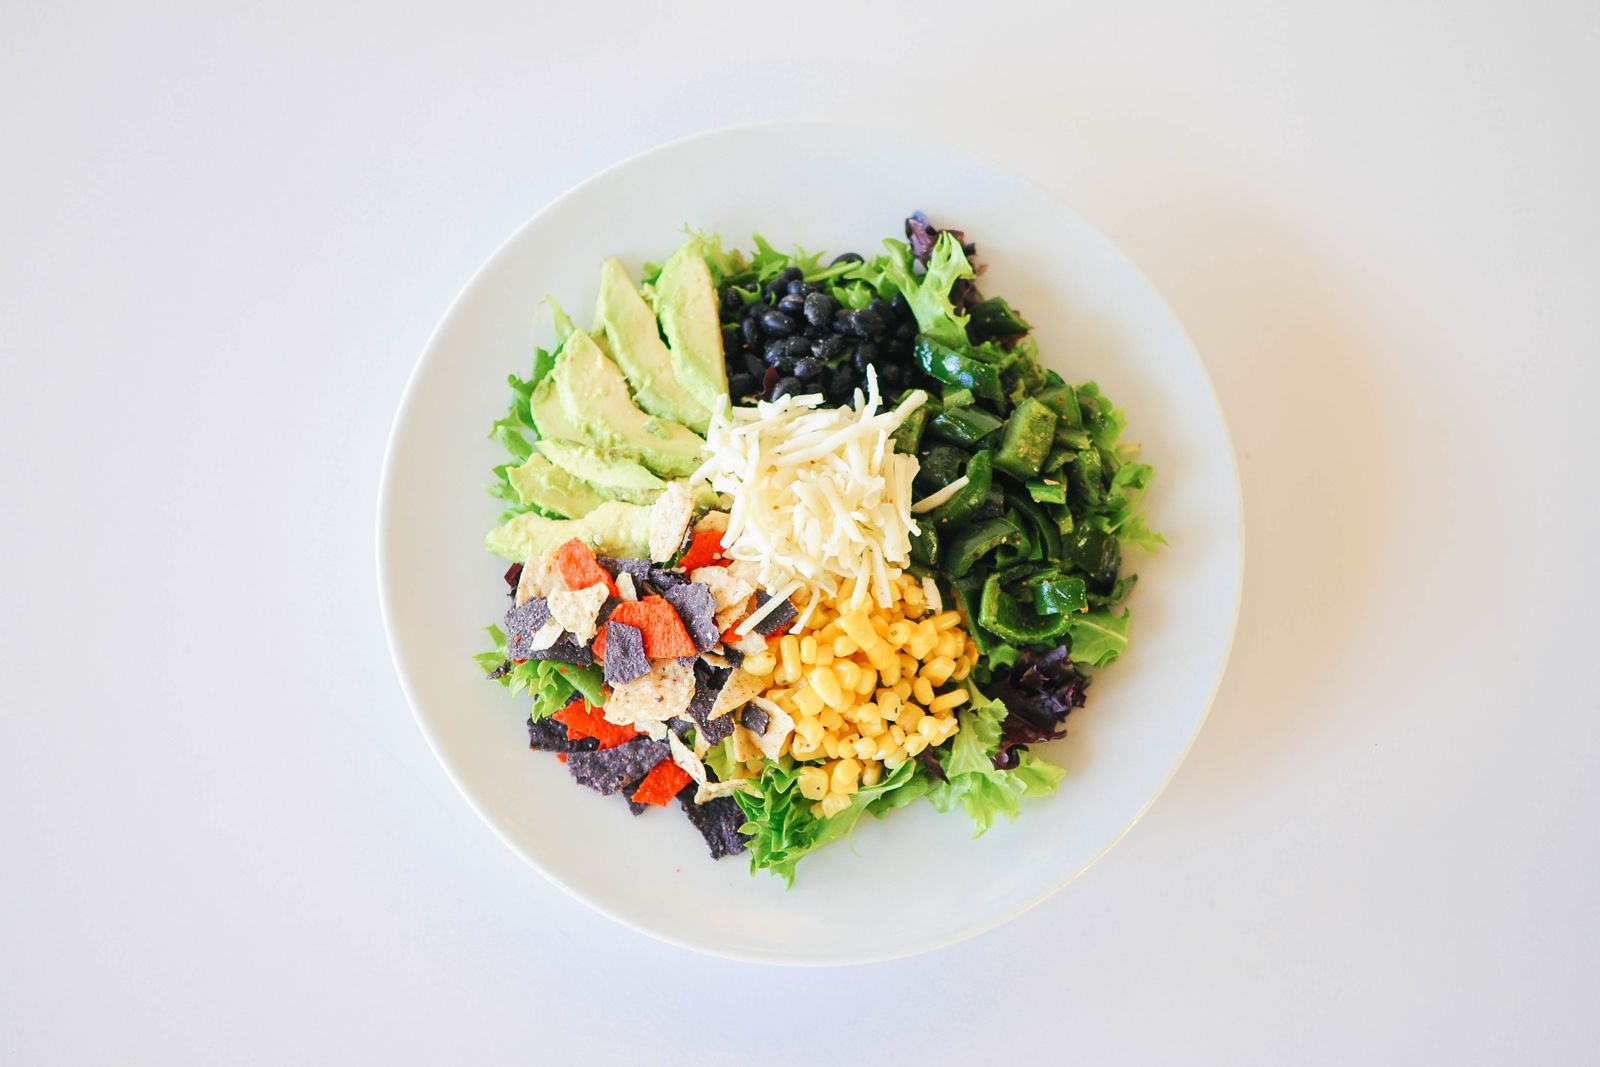 Coolgreens to Bring Signature Chef-Inspired Menu to Richardson